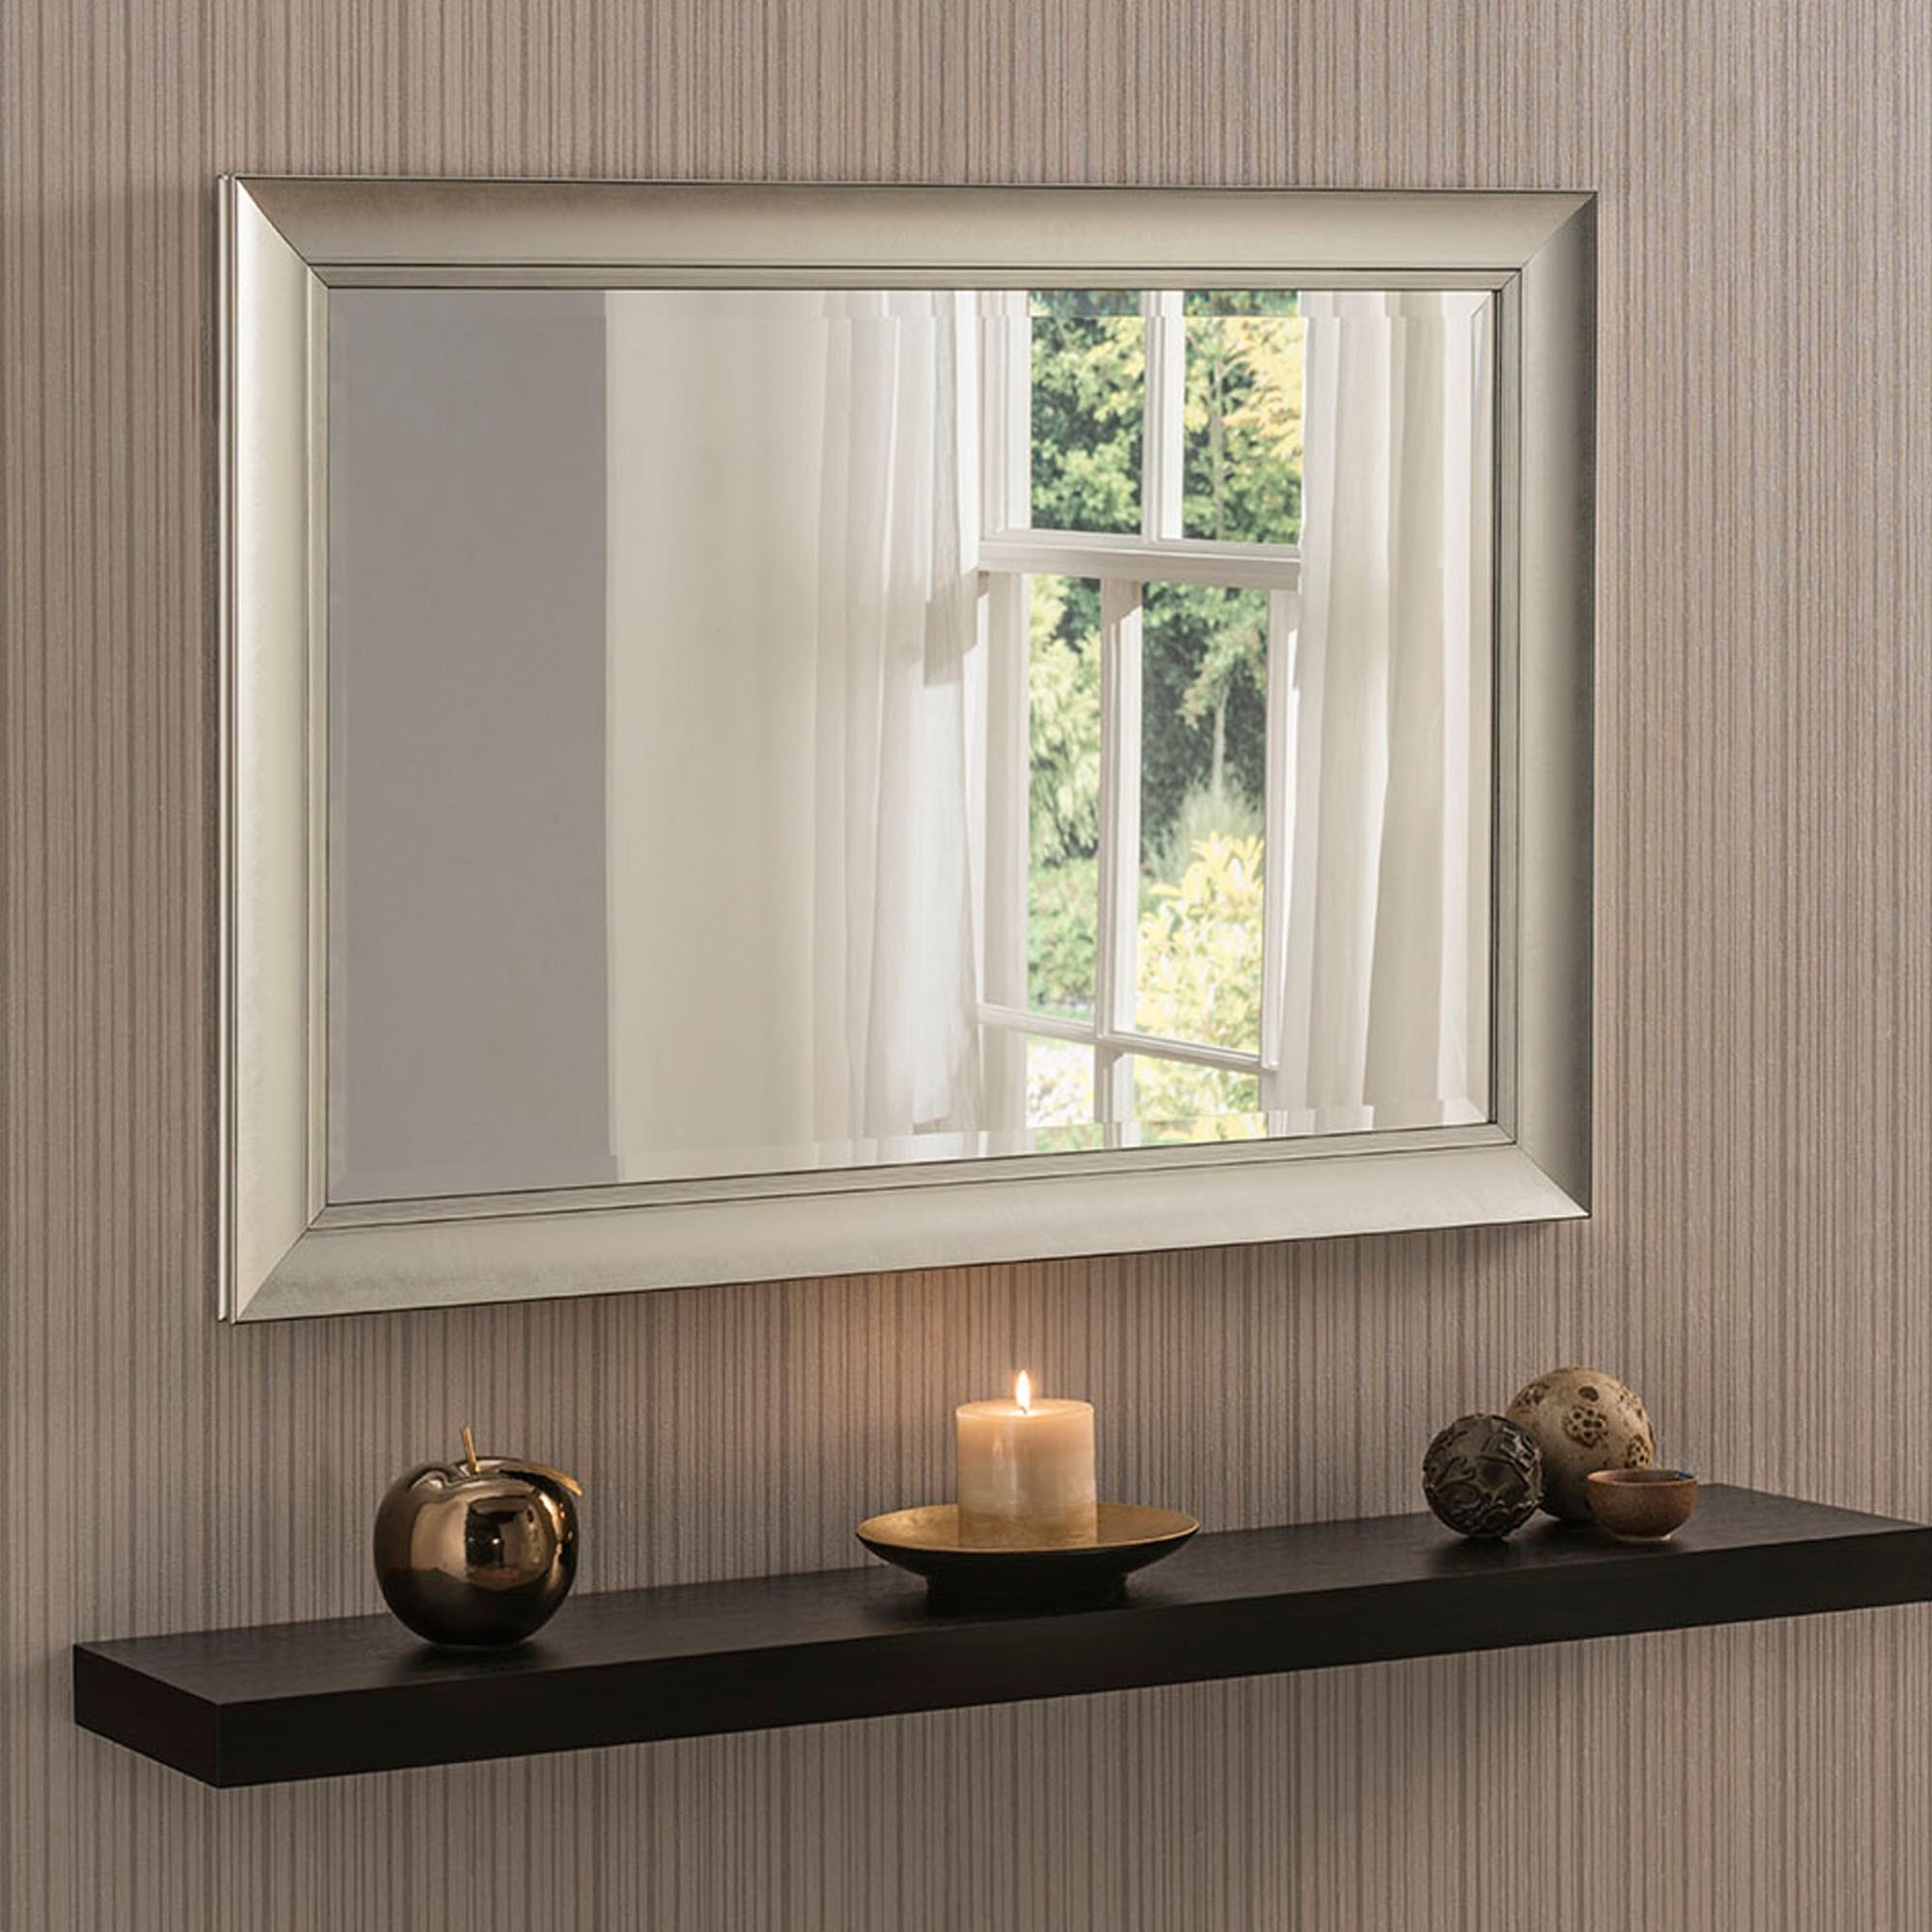 Contemporary Silver Beveled Wall Mirror in Modern & Contemporary Beveled Wall Mirrors (Image 7 of 30)